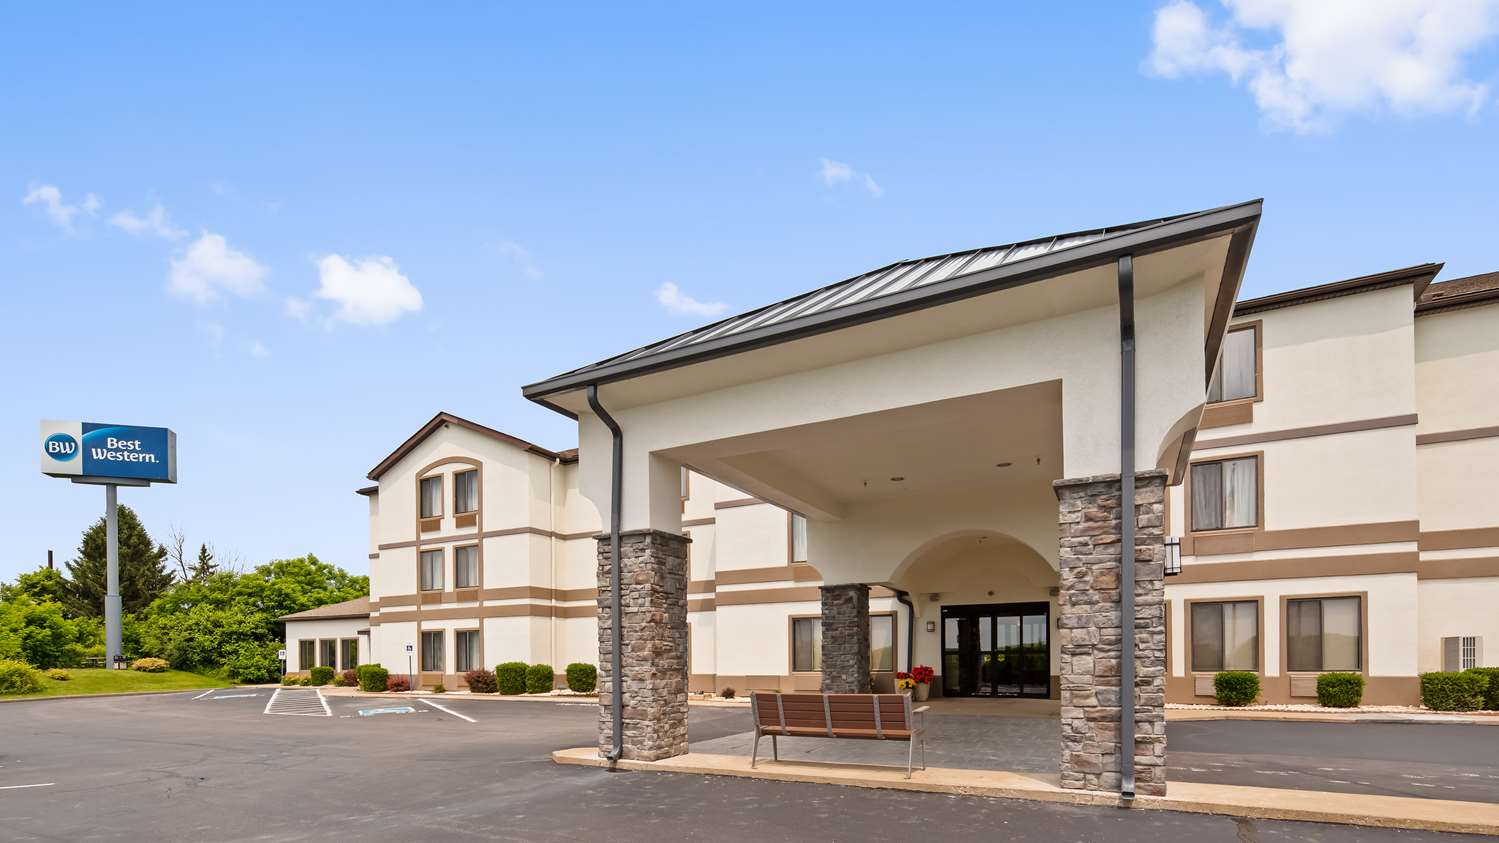 Holiday Inn Express Hotel & Suites St Clairsville